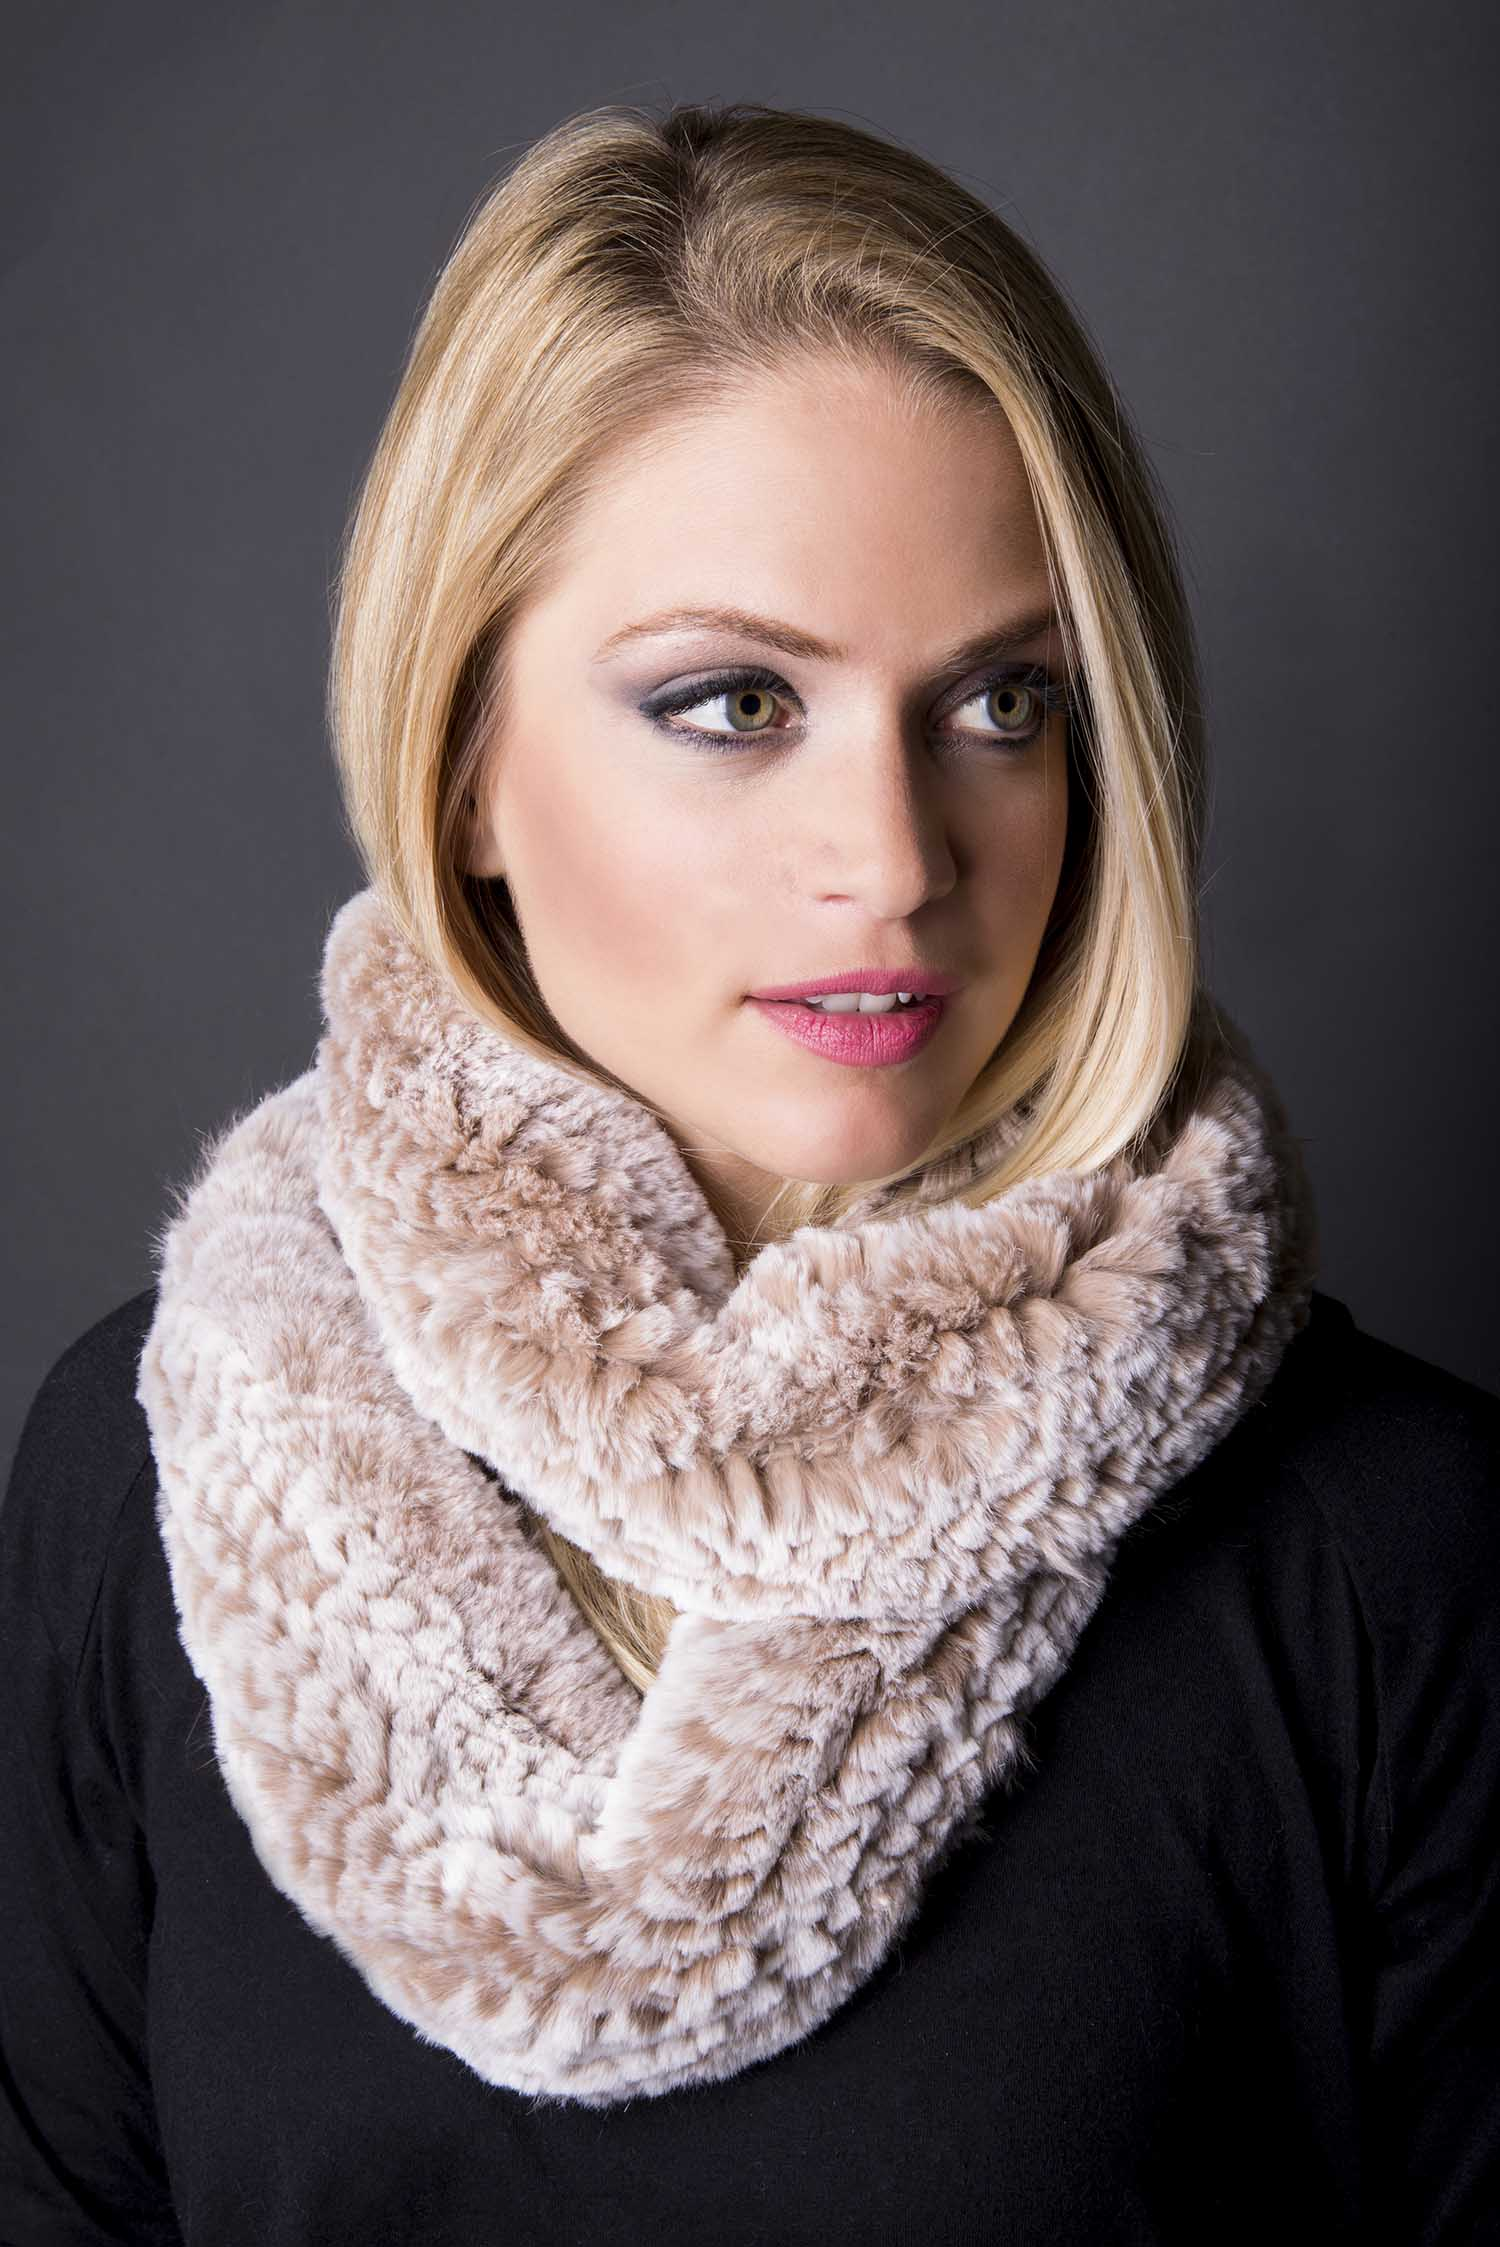 pat-flesher-furs-accessories-scarf-beige-pink-women.jpg